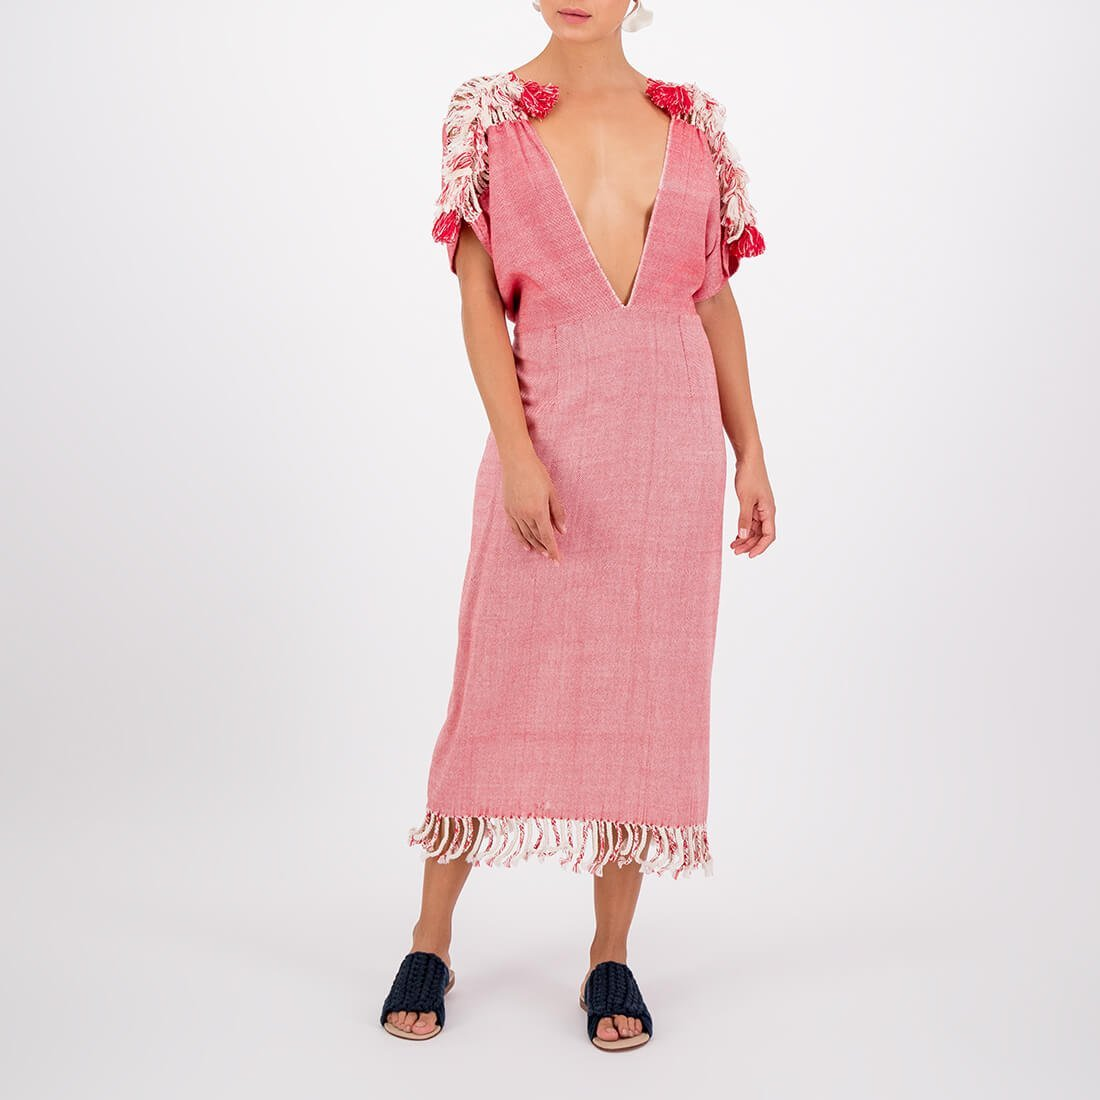 100% cotton handwoven dress with deep V-neck 2